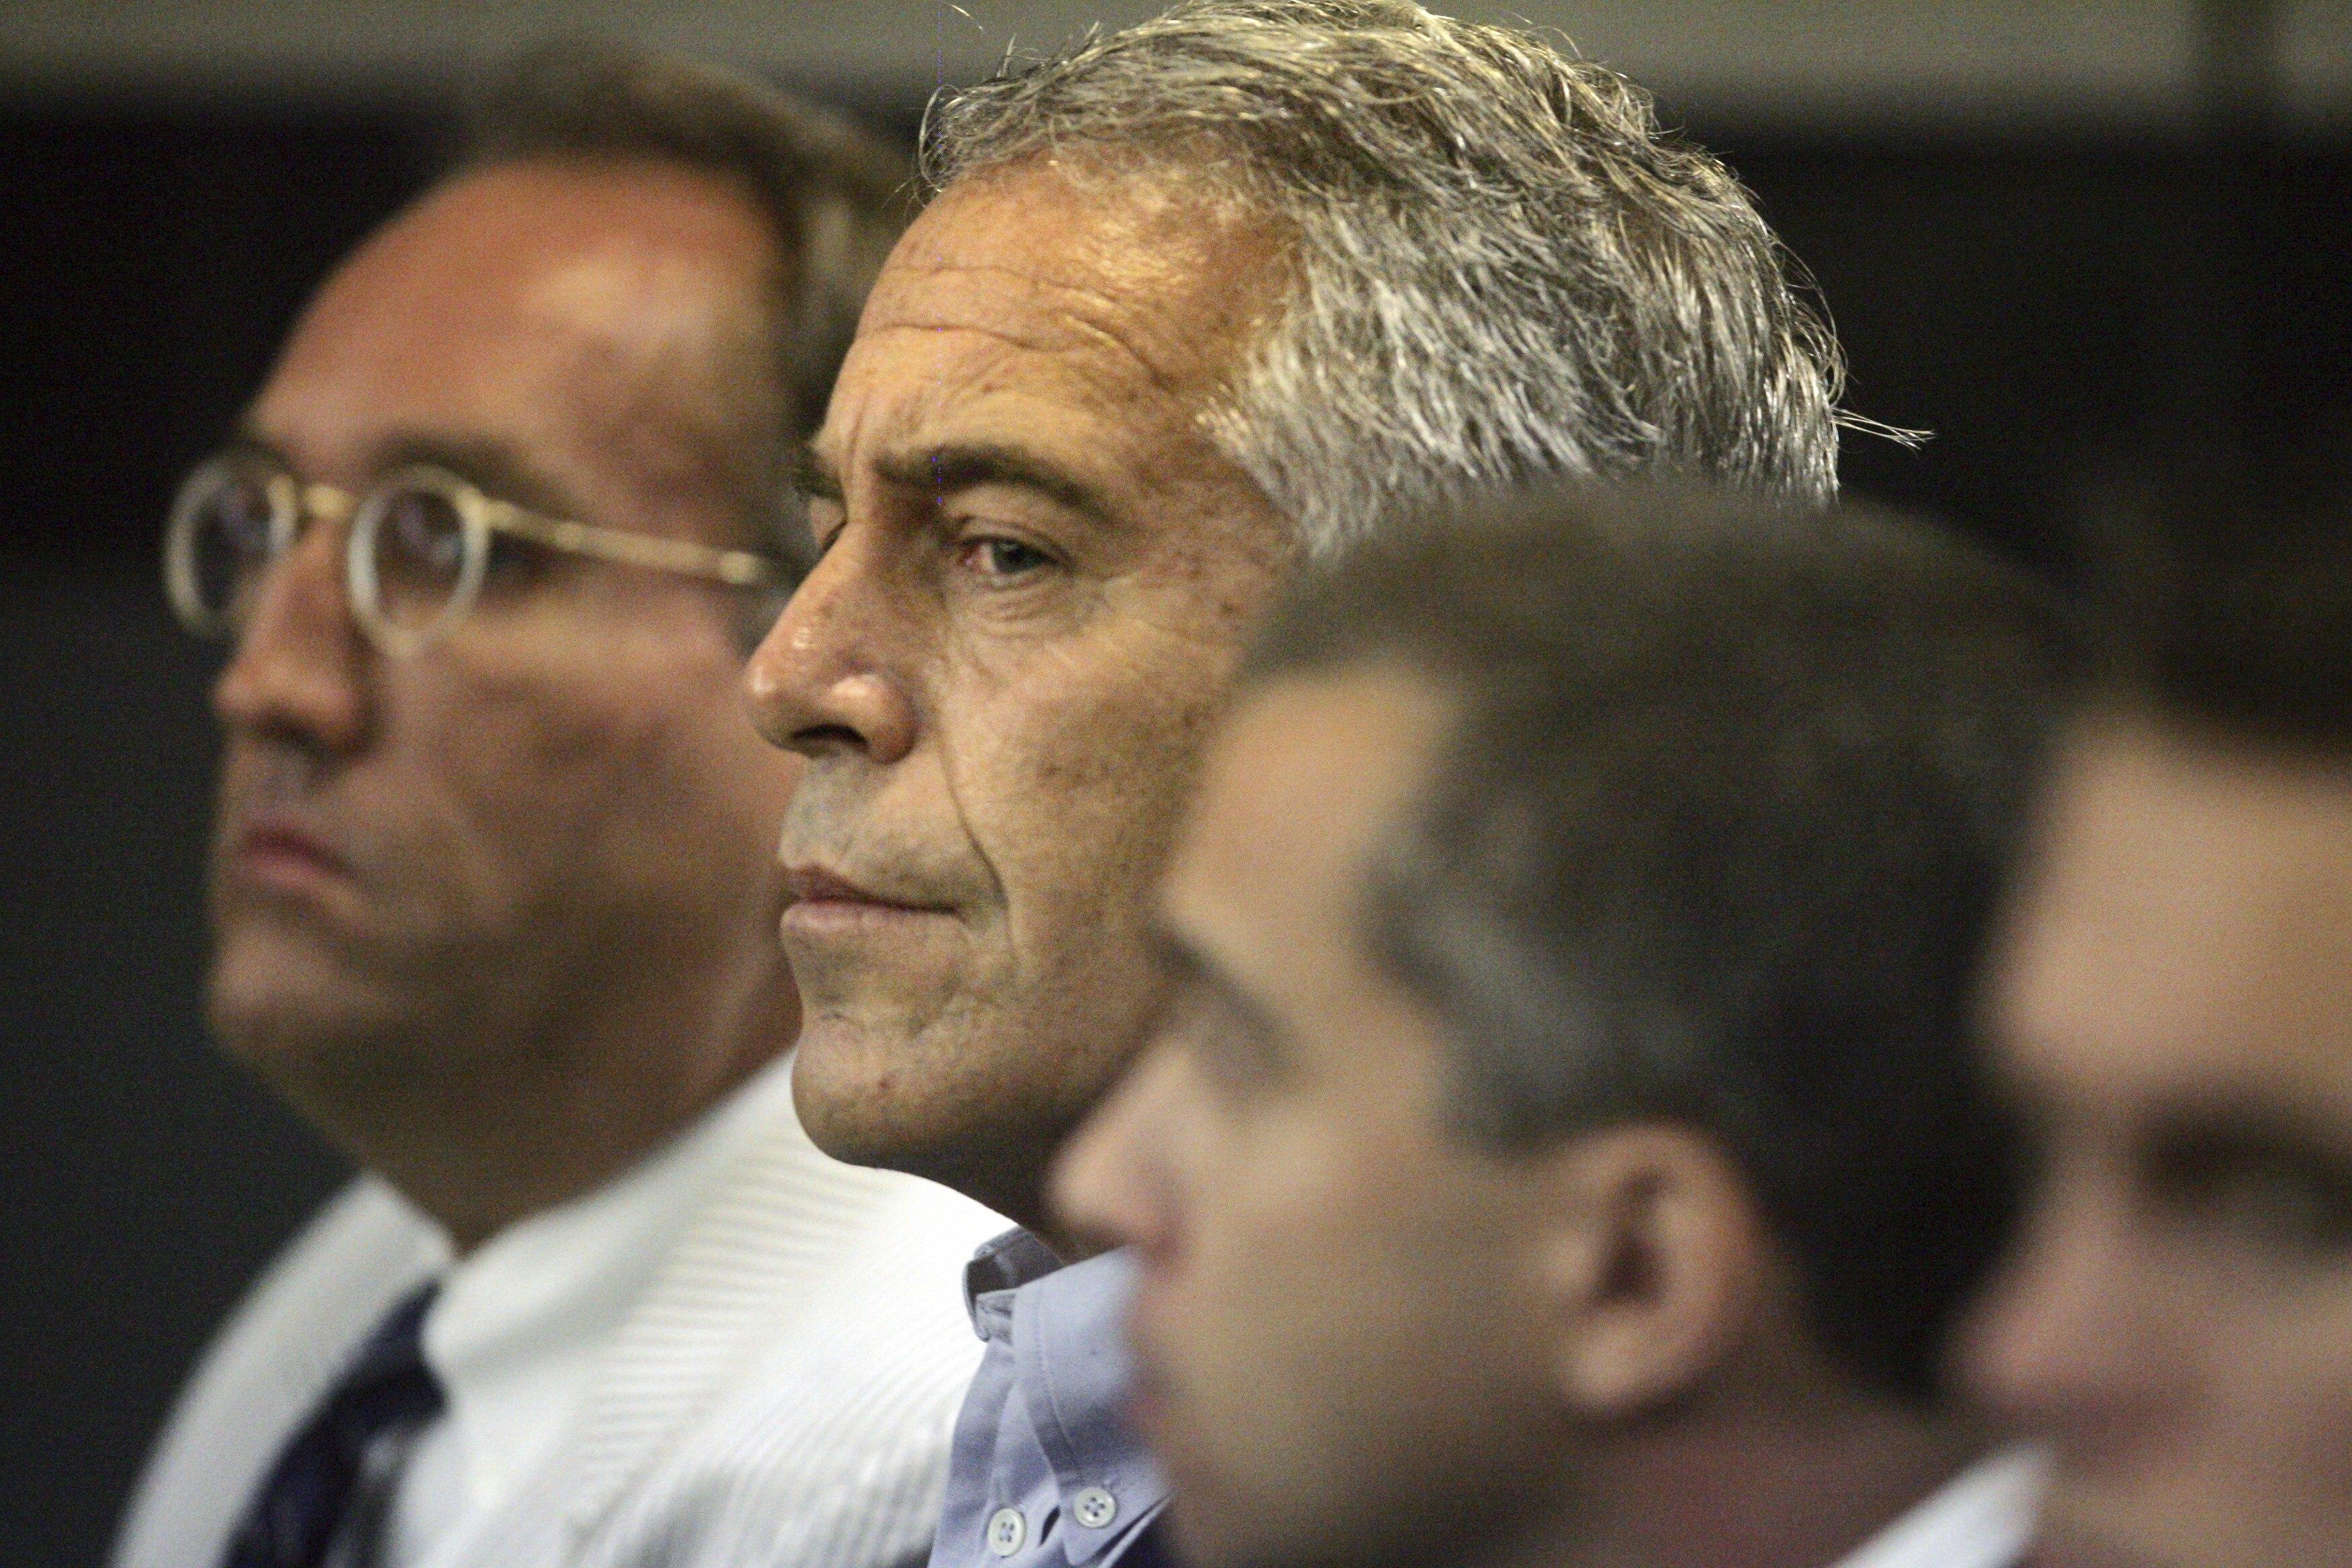 Jeffrey Epstein (center) in a a Palm Beach County courtroom on July 30, 2008.